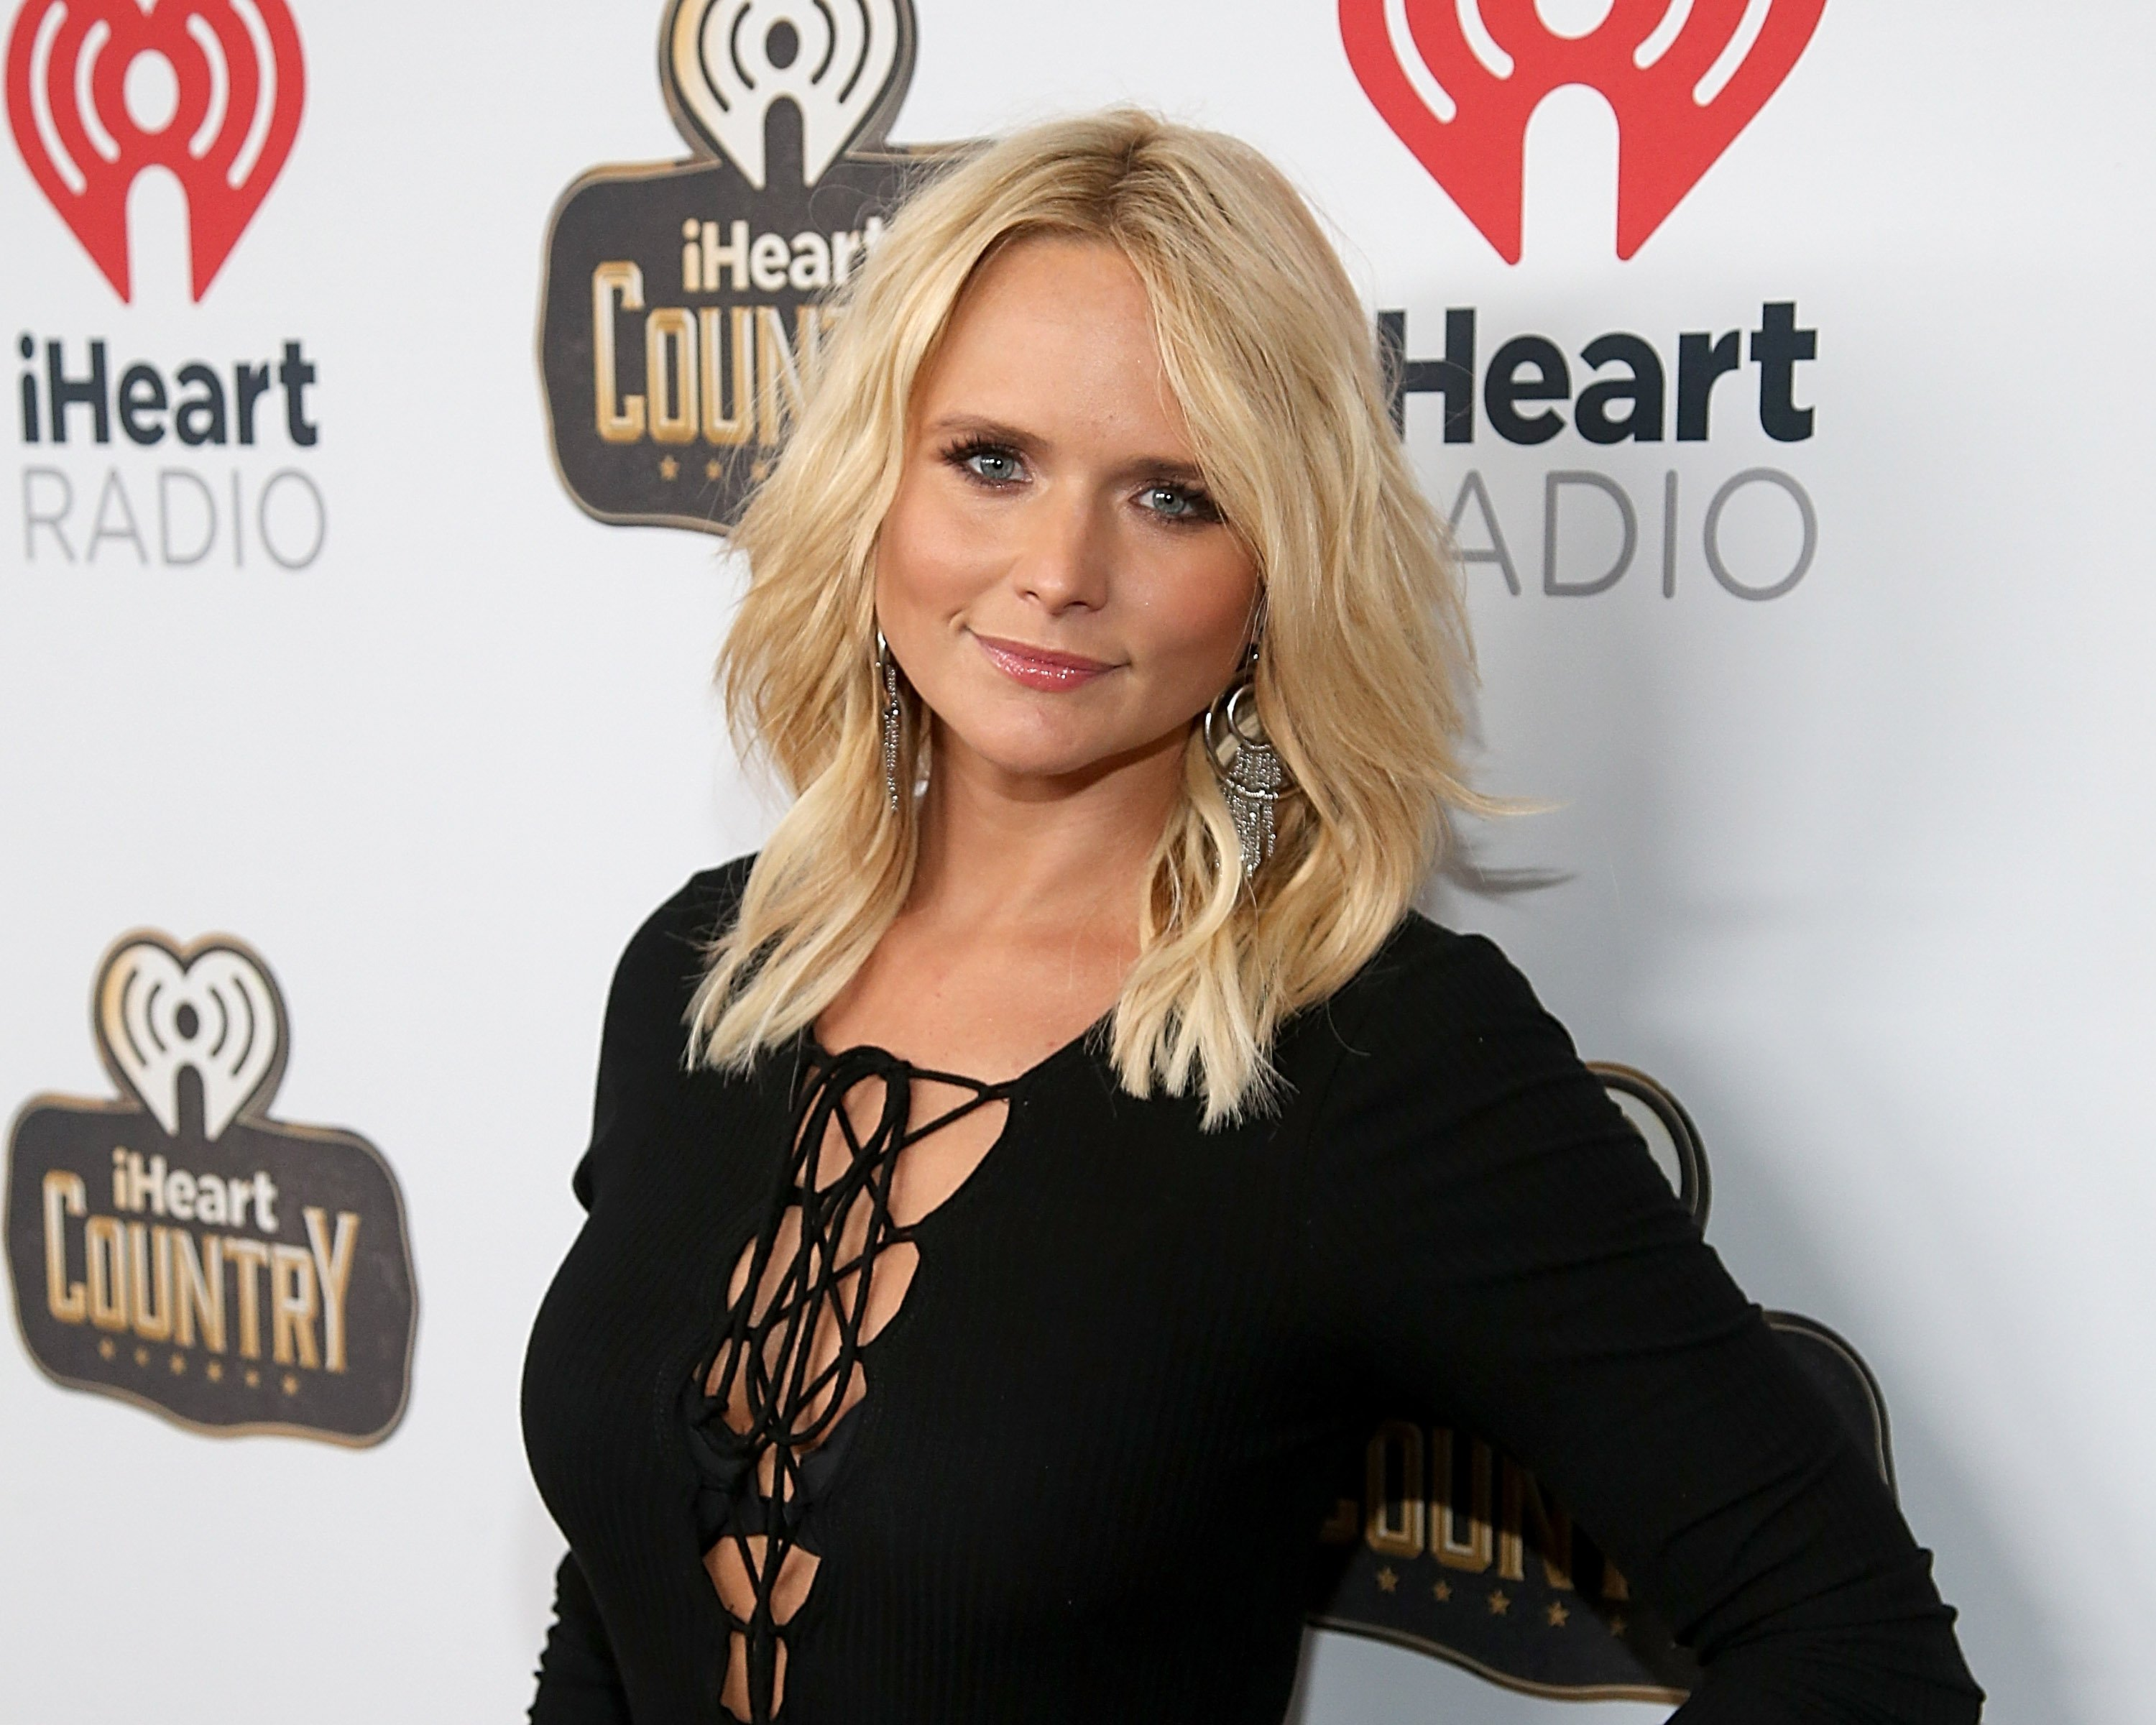 Country singer Miranda Lambert during the 2016 iHeartCountry Festival in Texas. | Photo: Getty Images